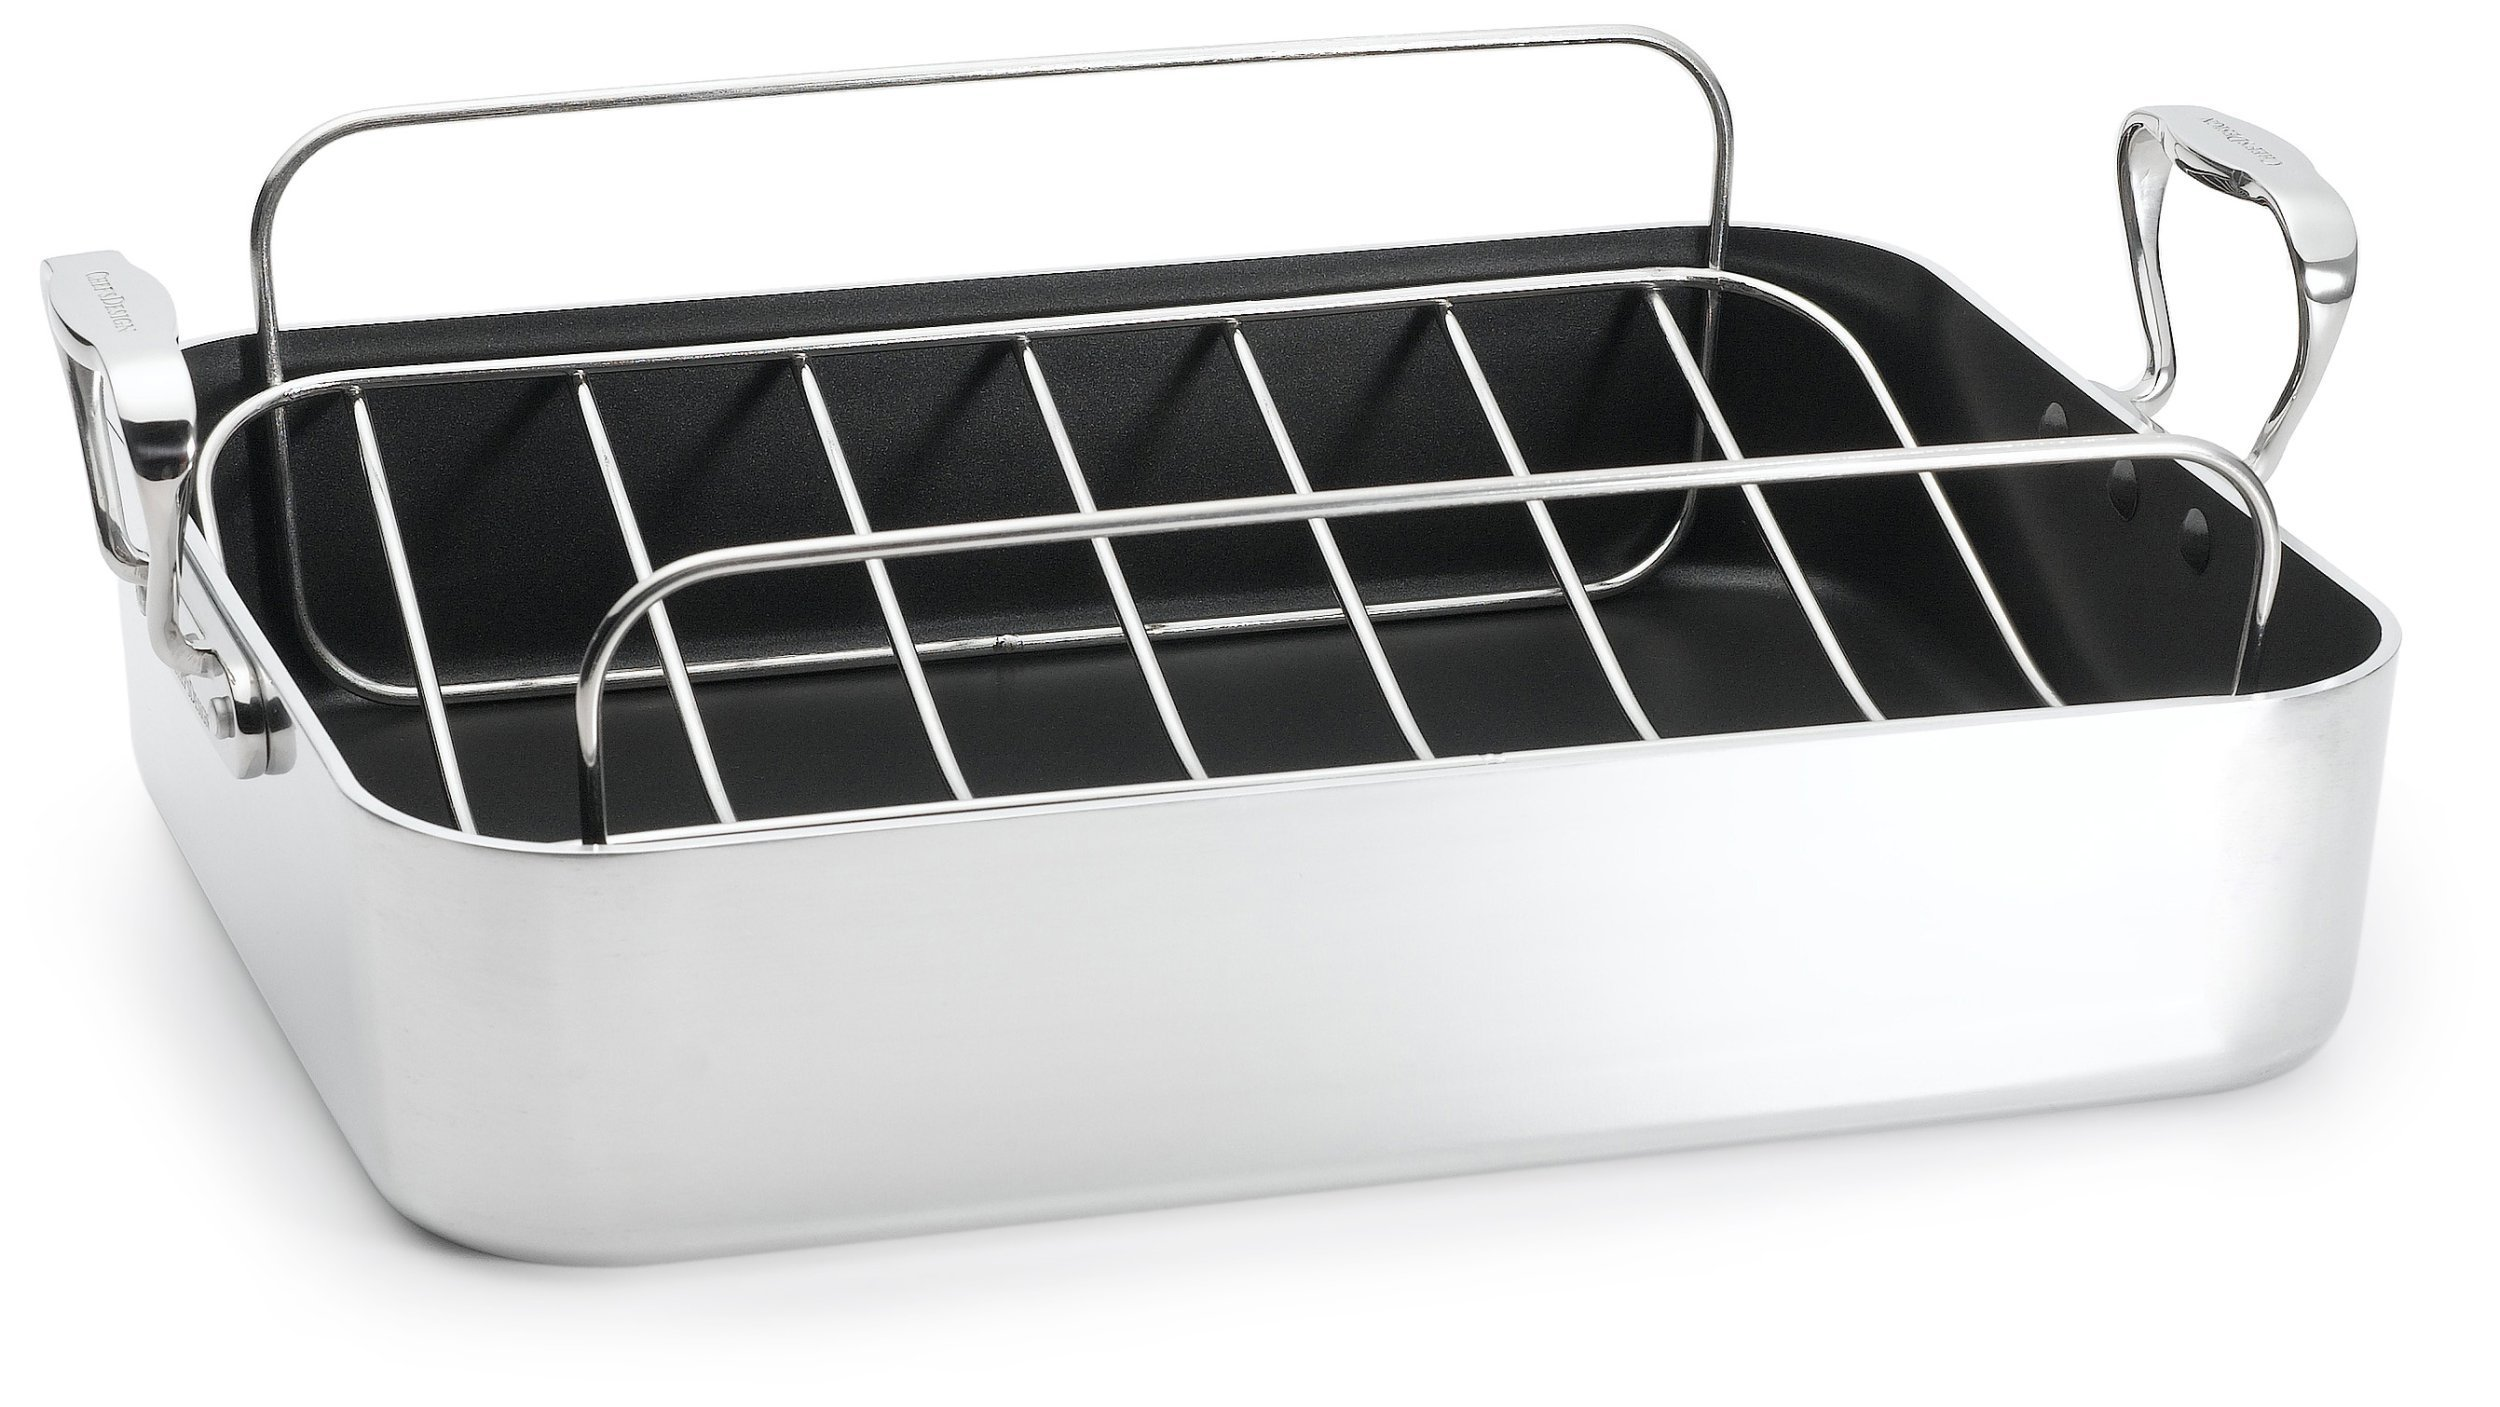 Chef's Design 16.5 Inch French Roaster with Rack